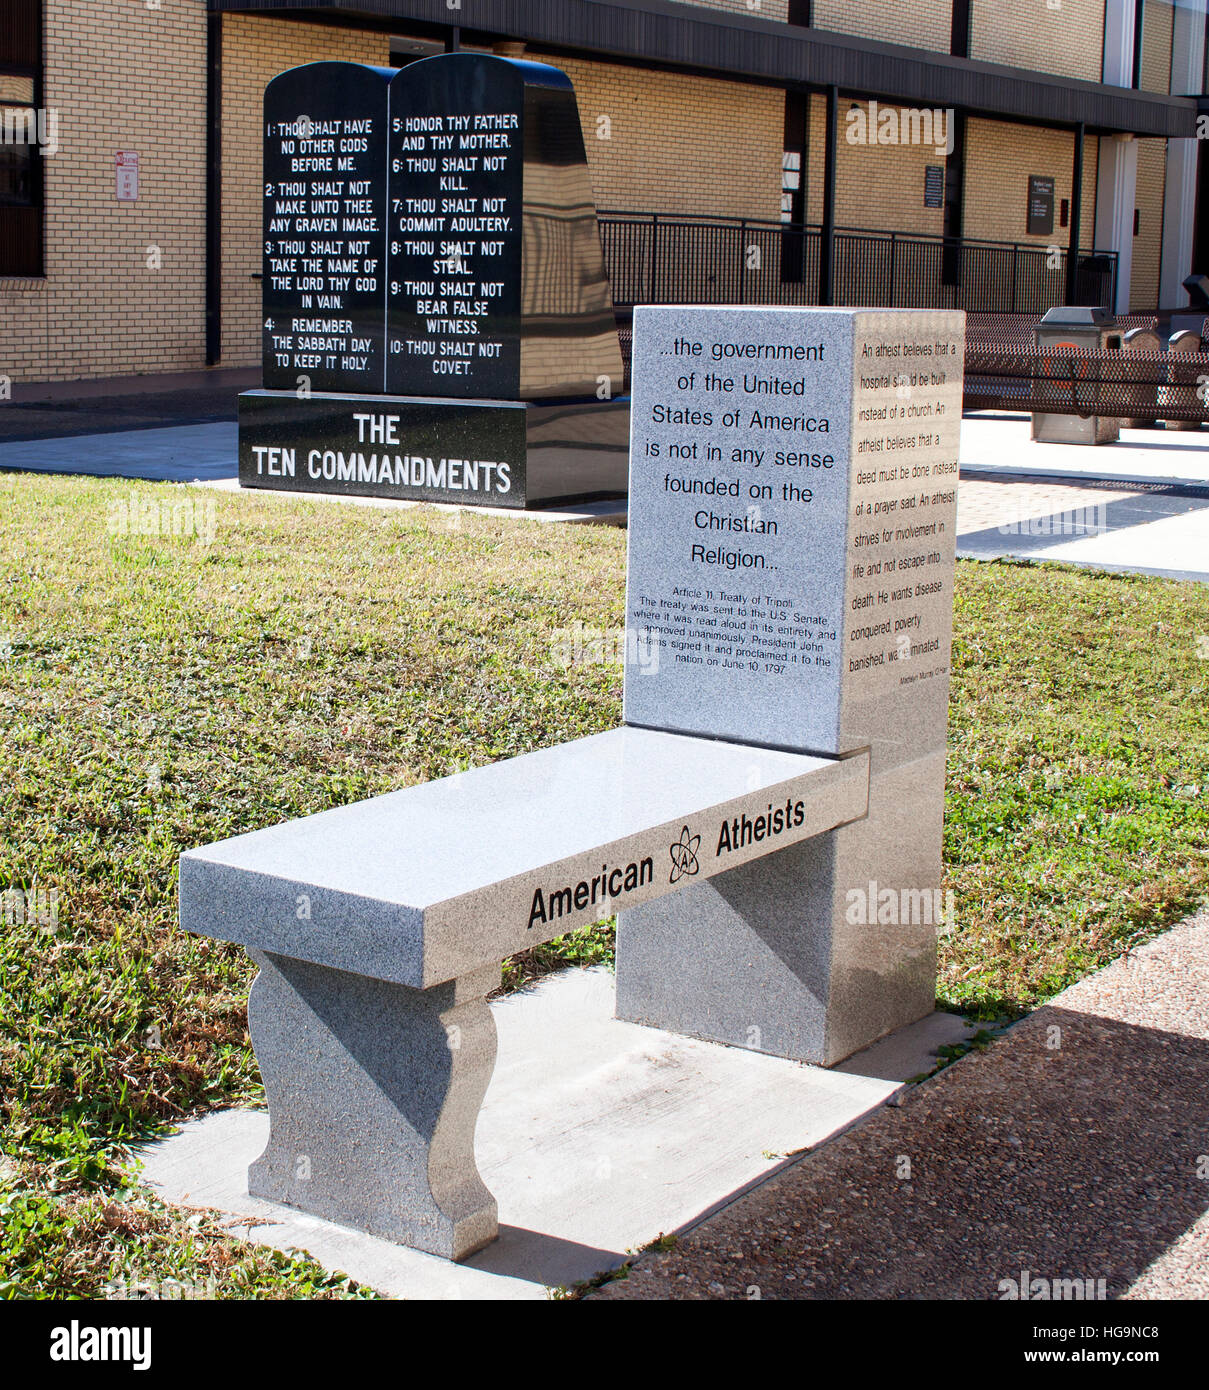 American Atheists monument bench in Starke Florida - Stock Image